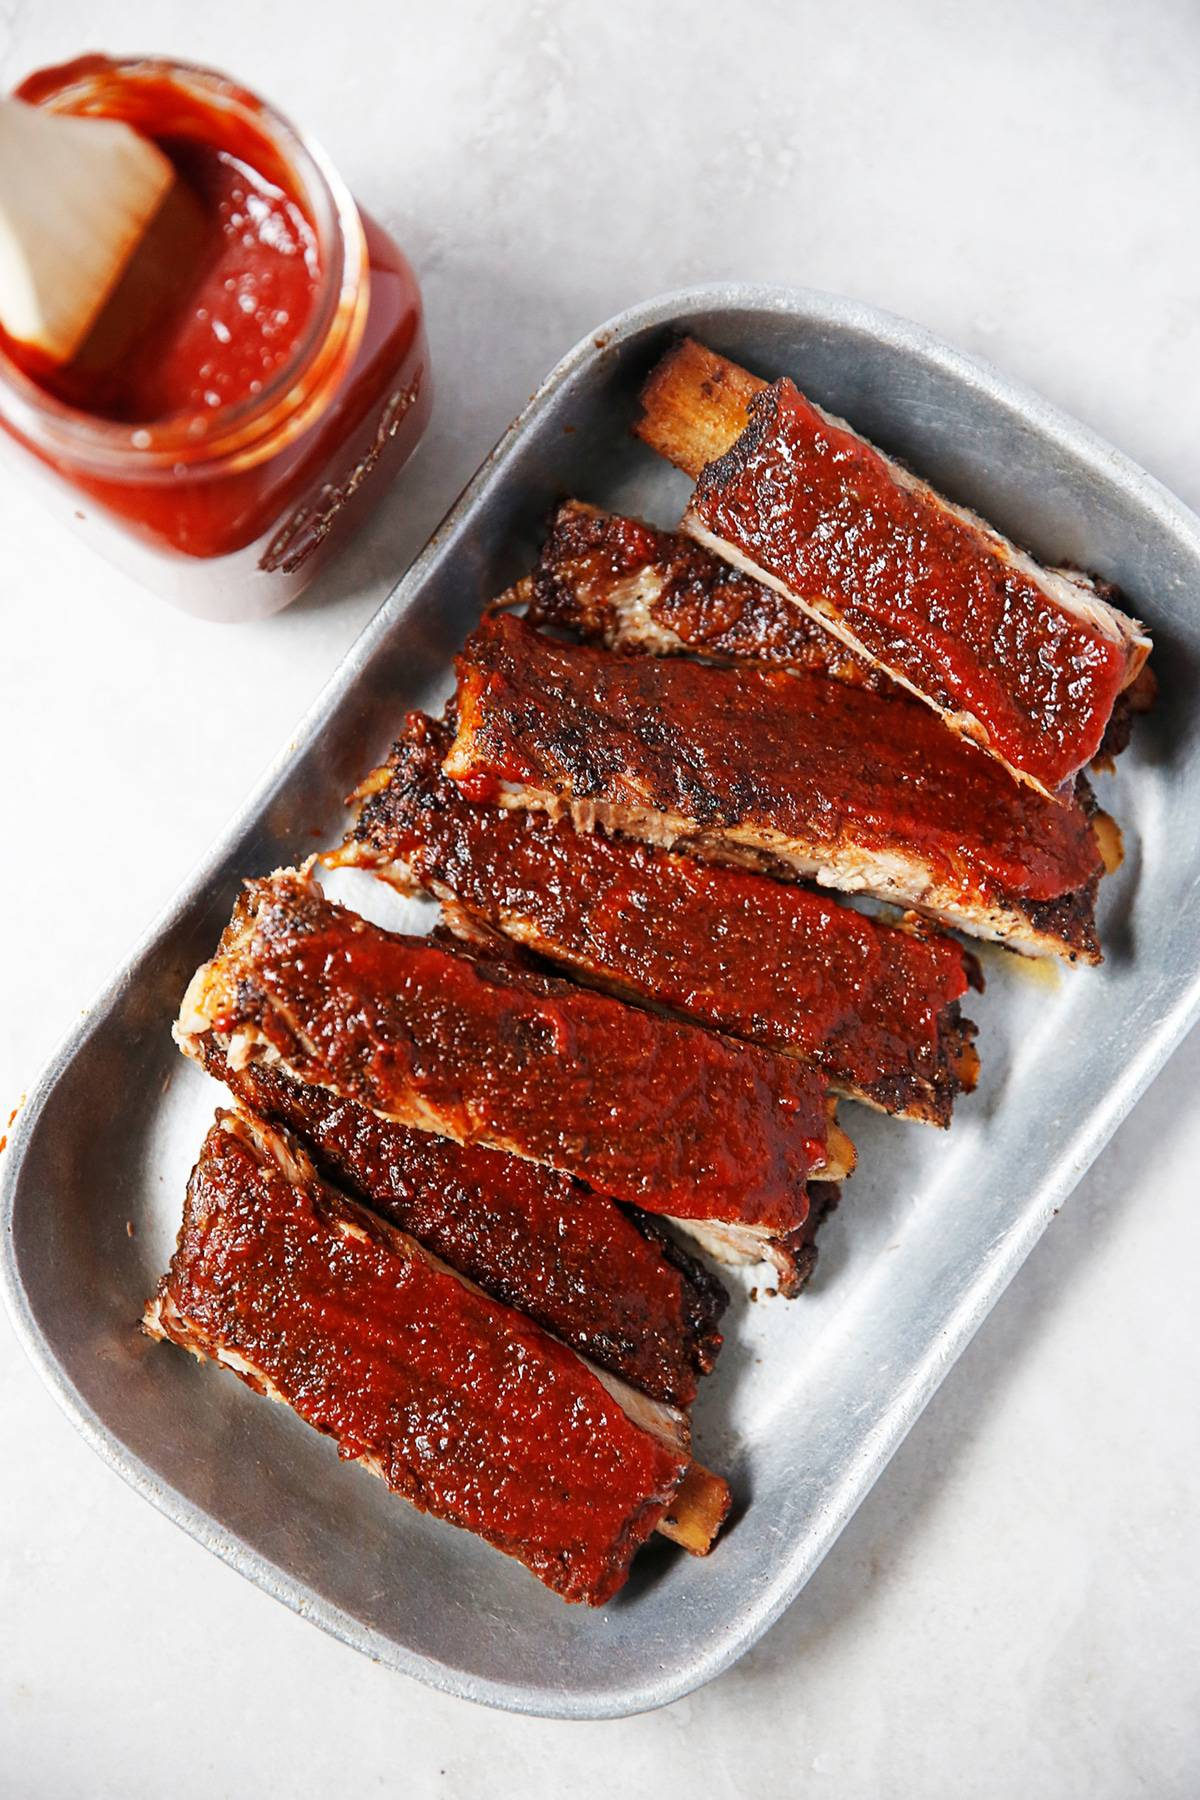 Oven Baked Coffee Barbecue Pork Ribs (Keto & Paleo)